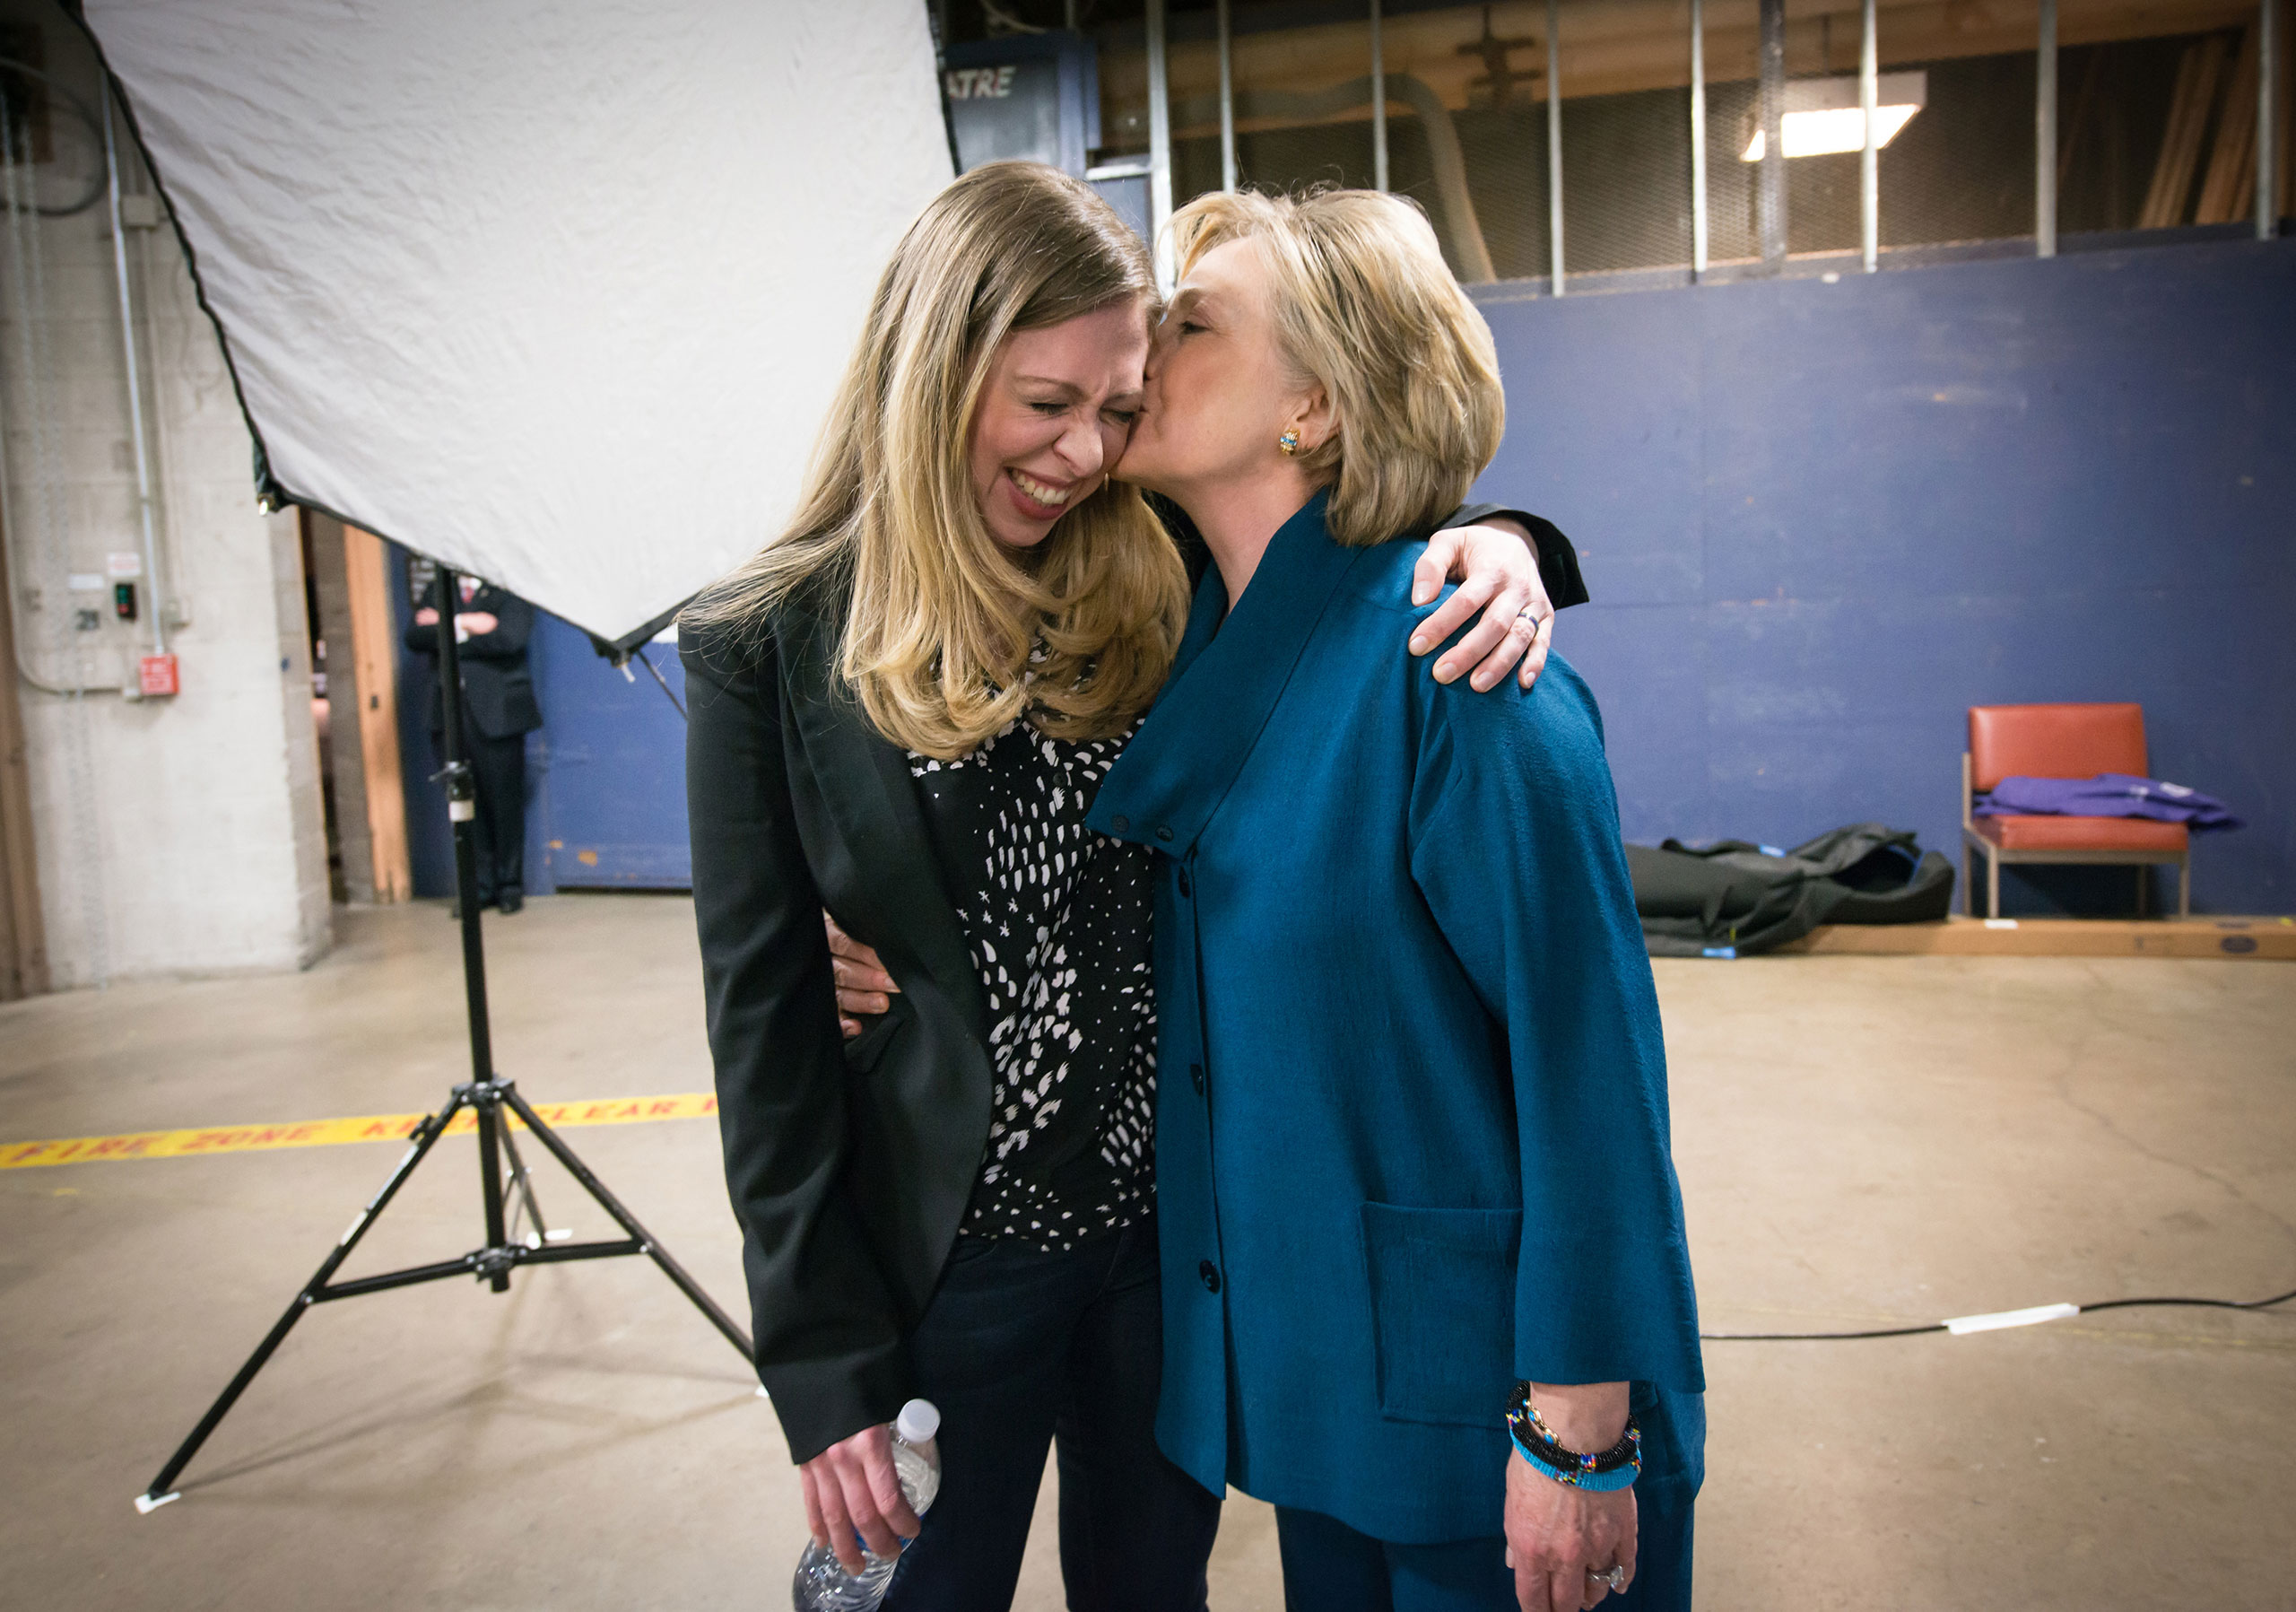 Chelsea Clinton and her mother, Secretary of State Hillary Clinton, share a moment backstage at the Clinton Global Initiative University meeting at Arizona State University in Tempe, Ariz., March 22, 2014.